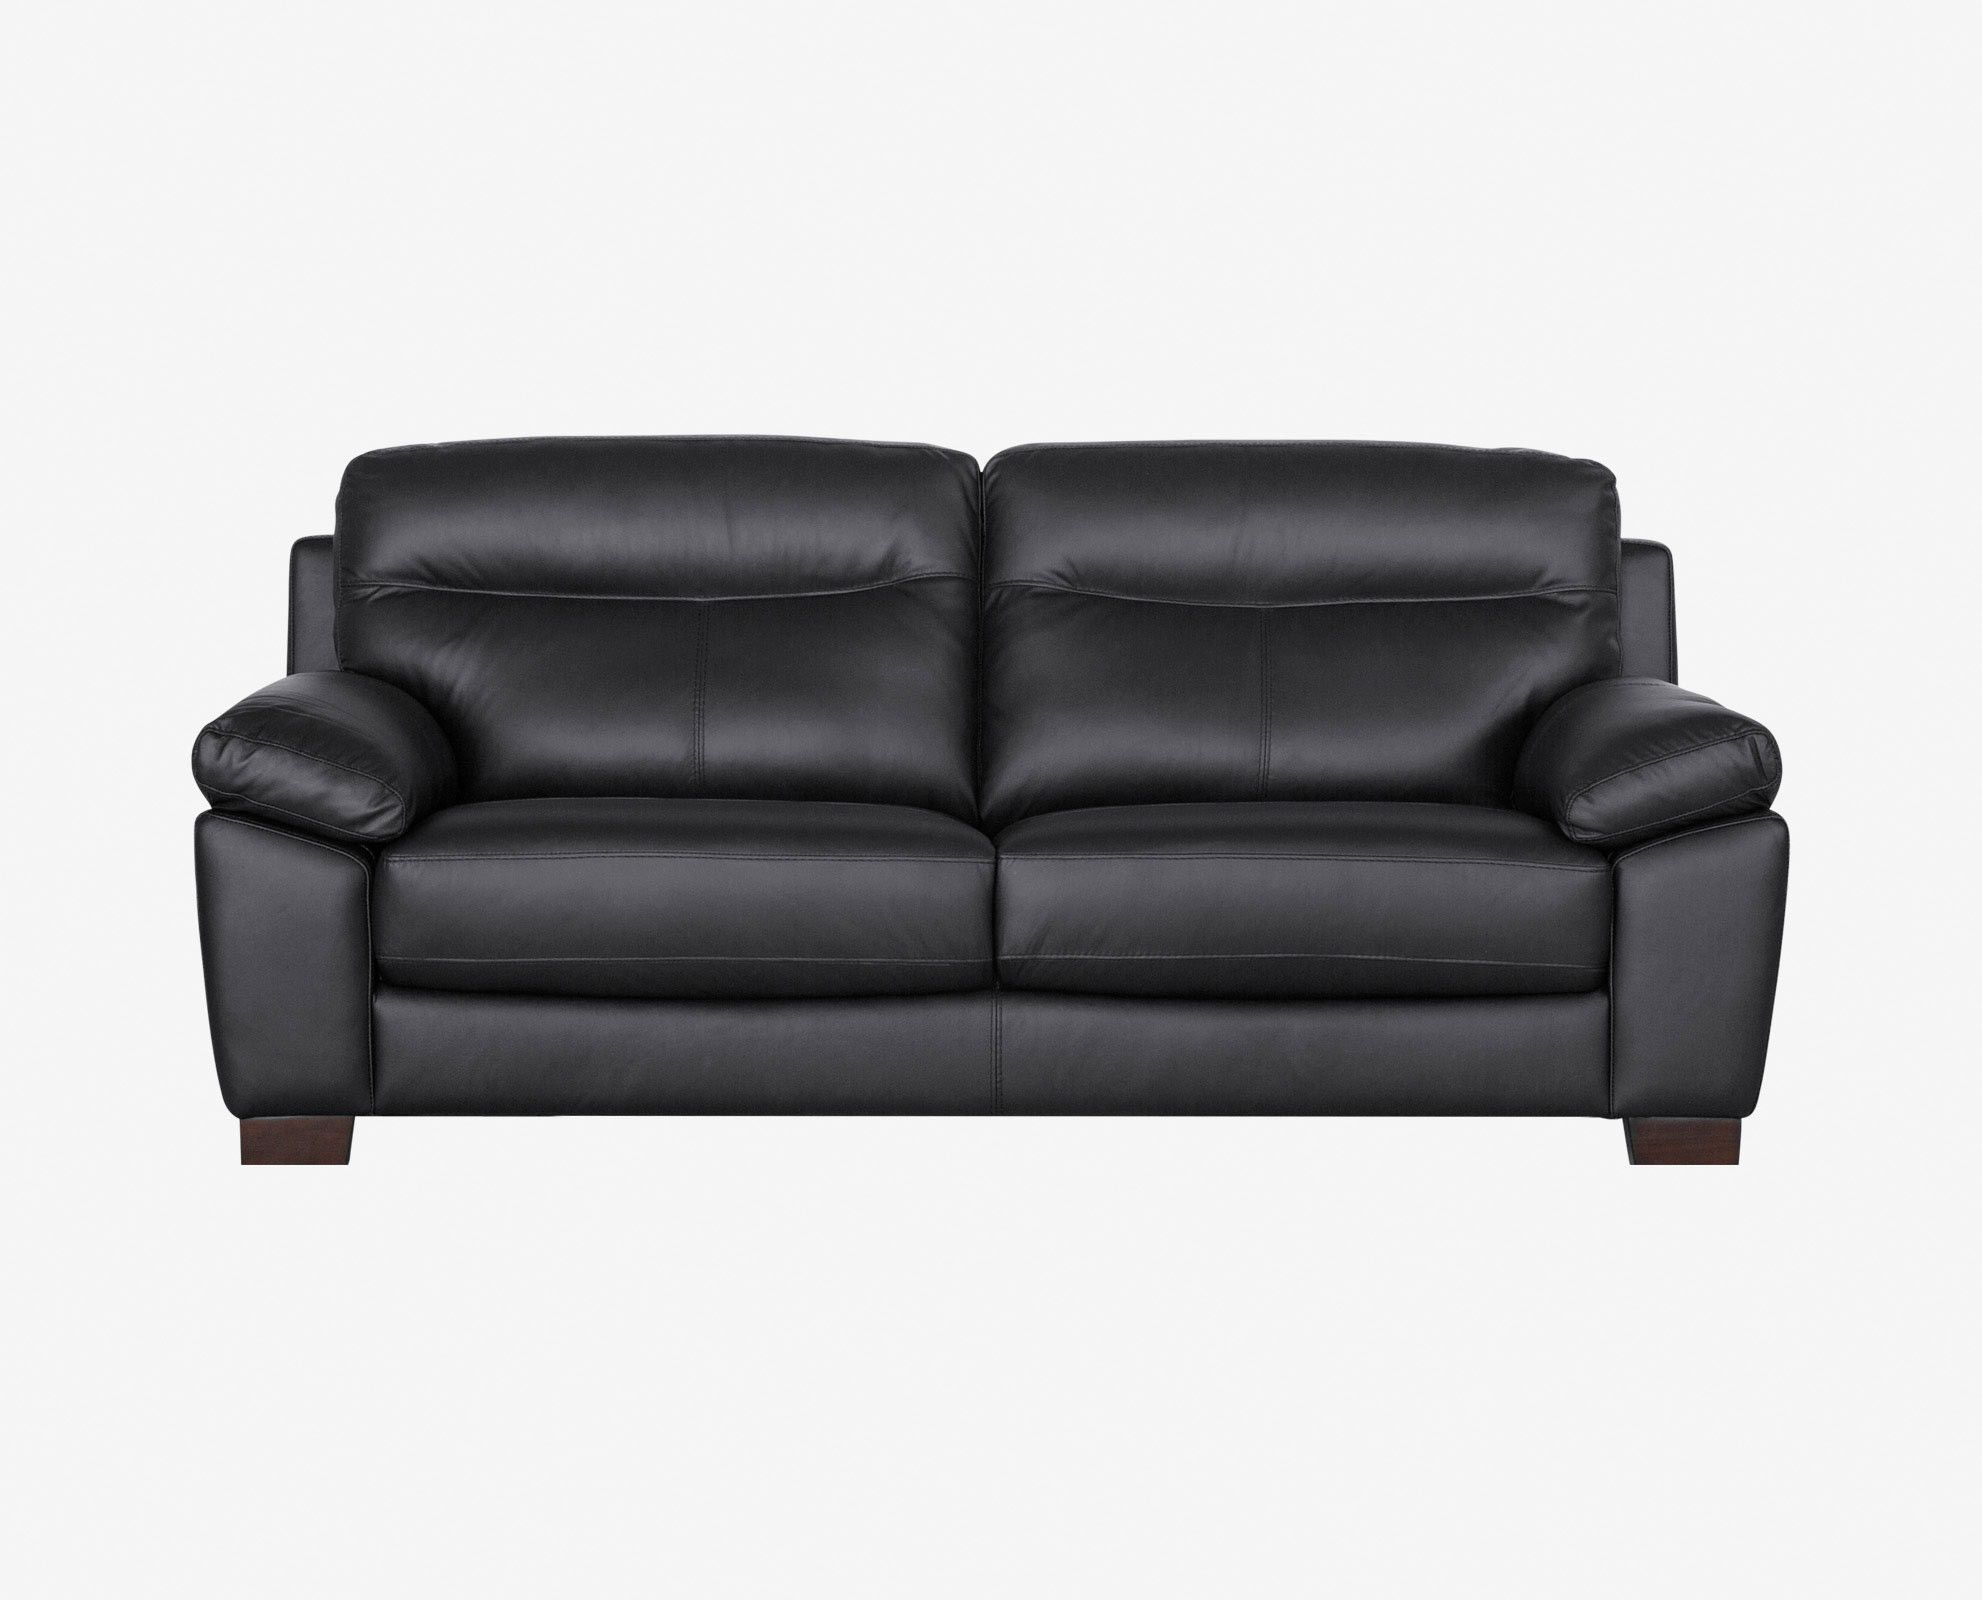 seine sectional Google Search Furniture Pinterest